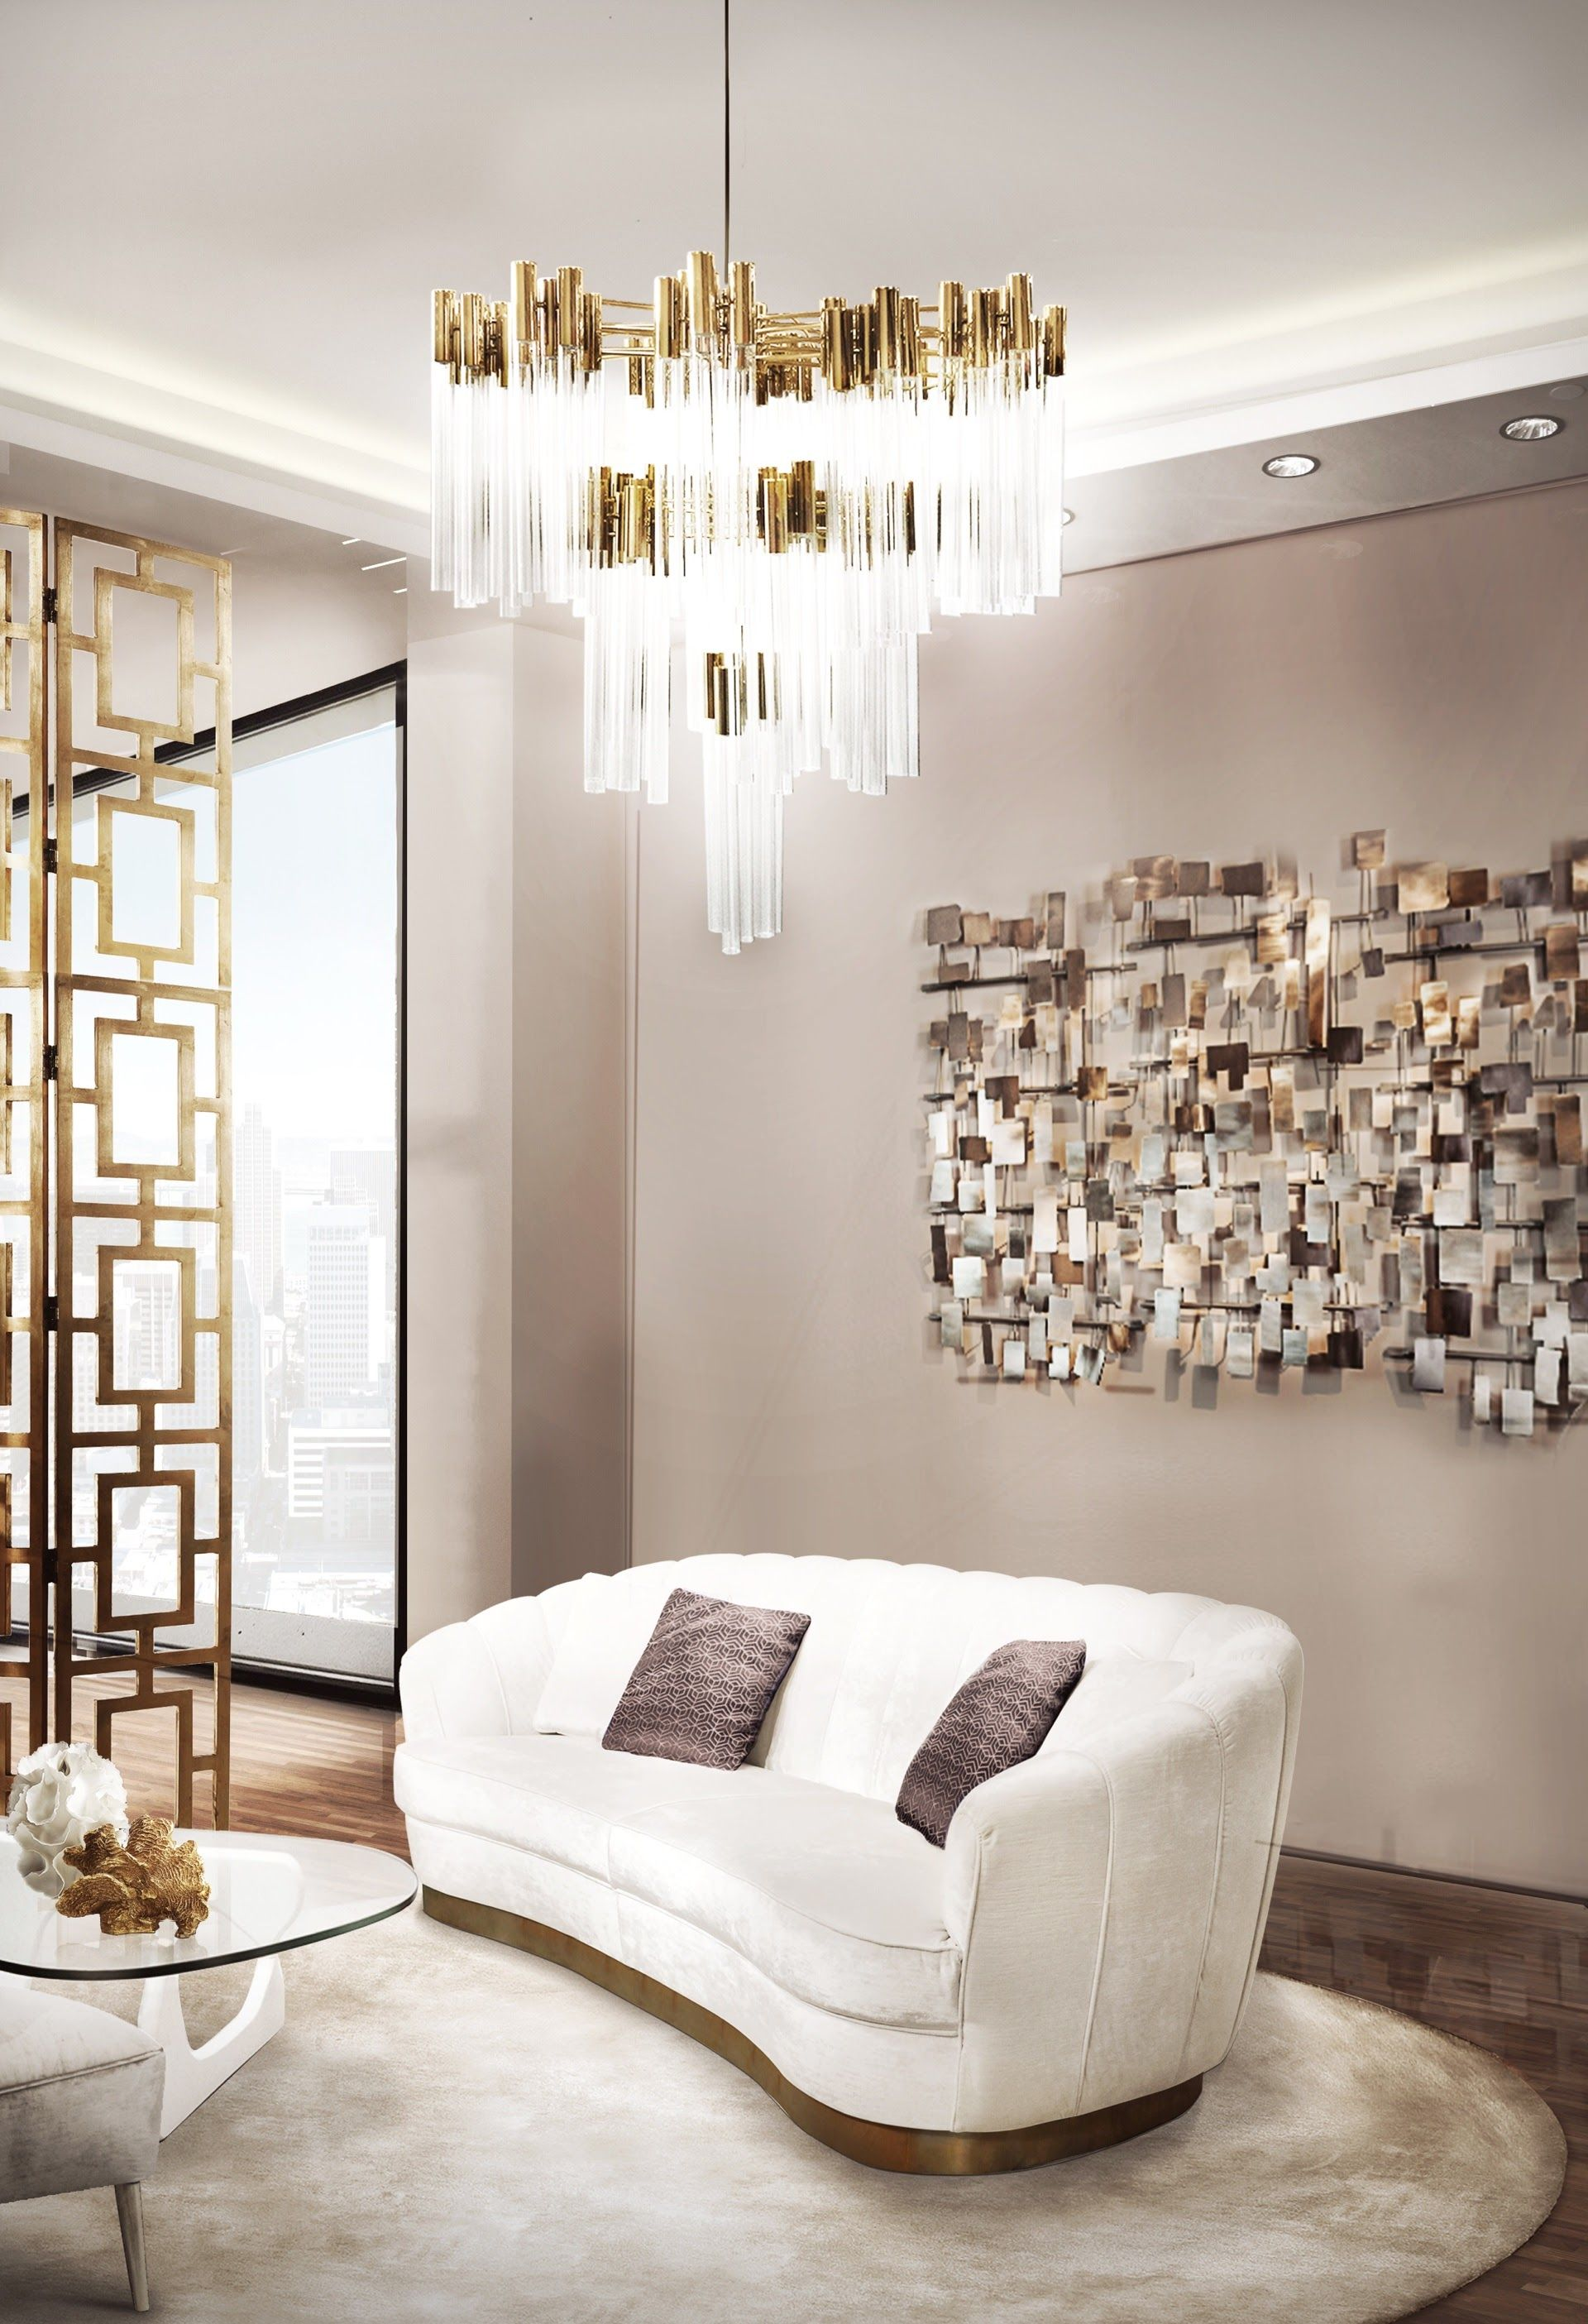 Best Design Projects With The Most Exquisite Chandeliers and Pendant ...